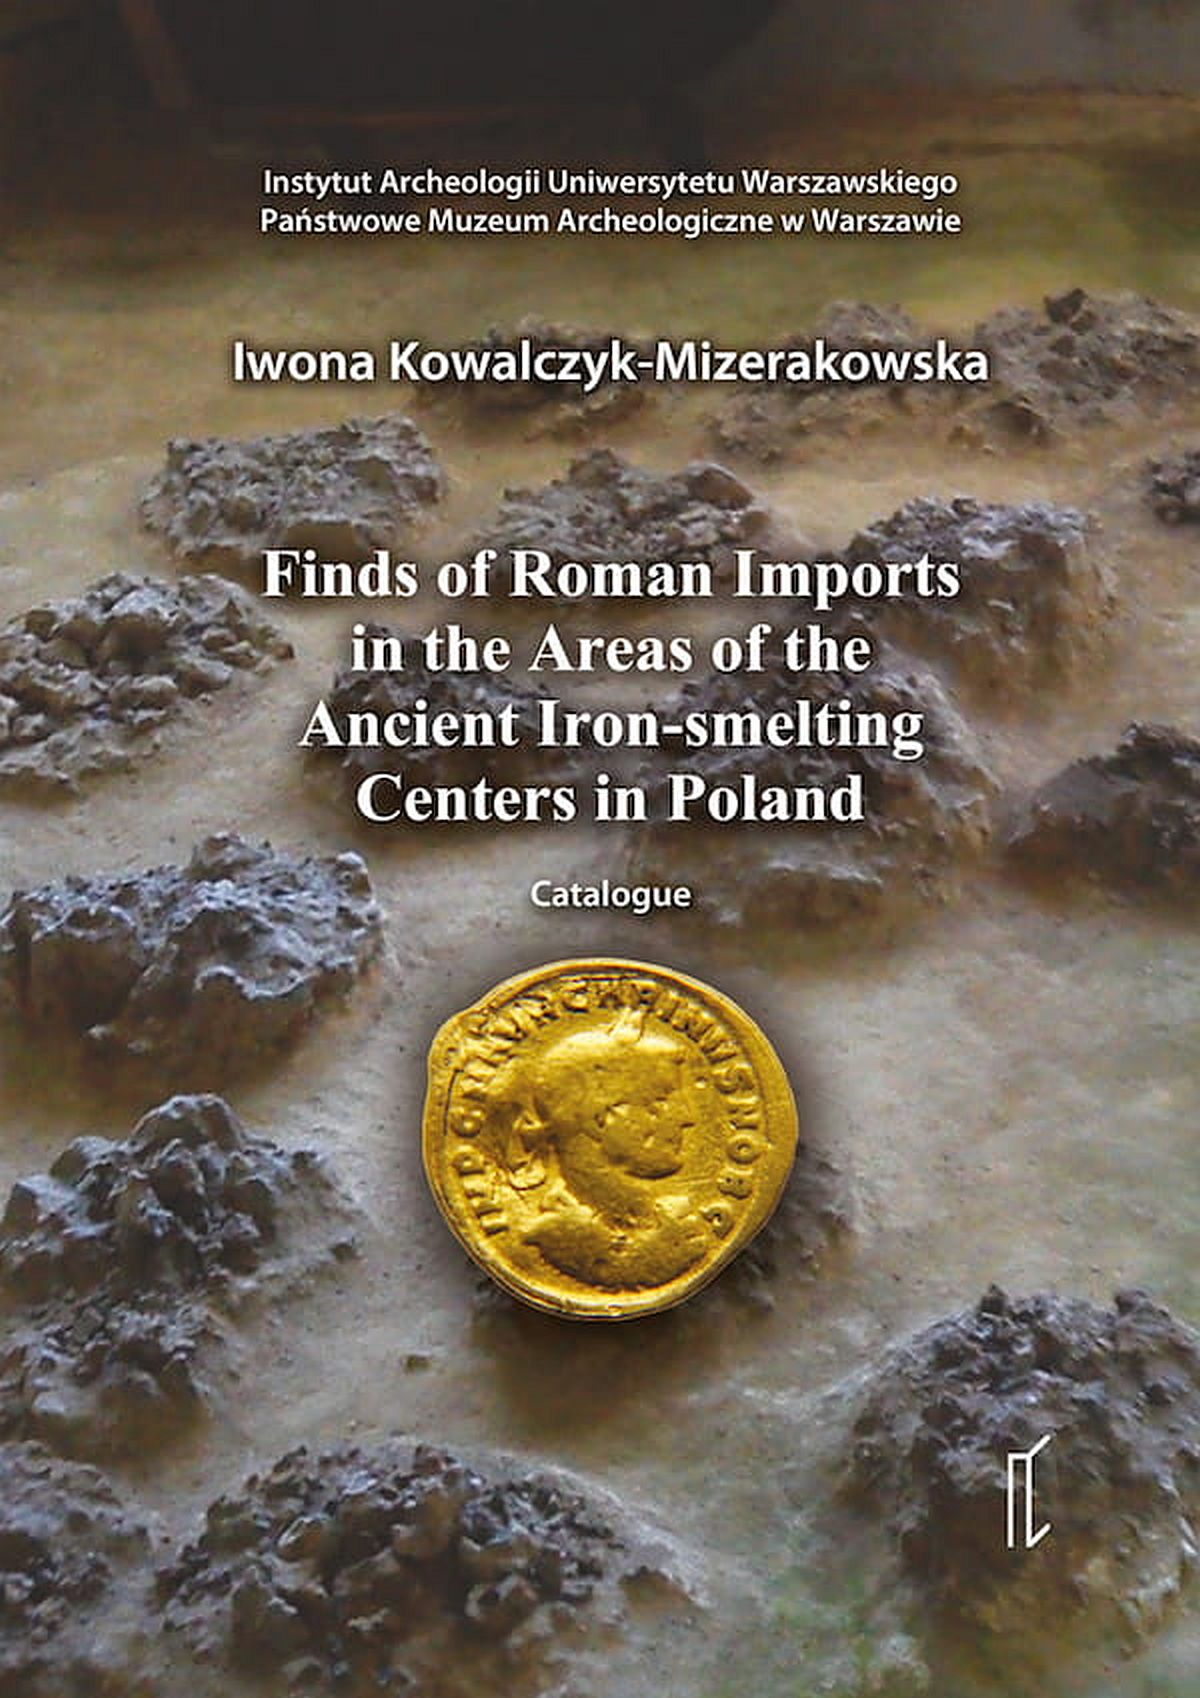 Finds of Roman Imports in the Areas of the Ancient Iron-smelting Centres in Poland. Catalogue (+ CD)